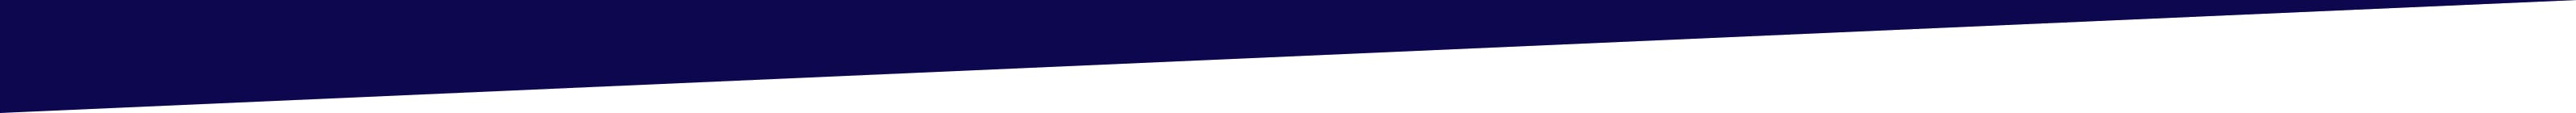 Blue to white page divider